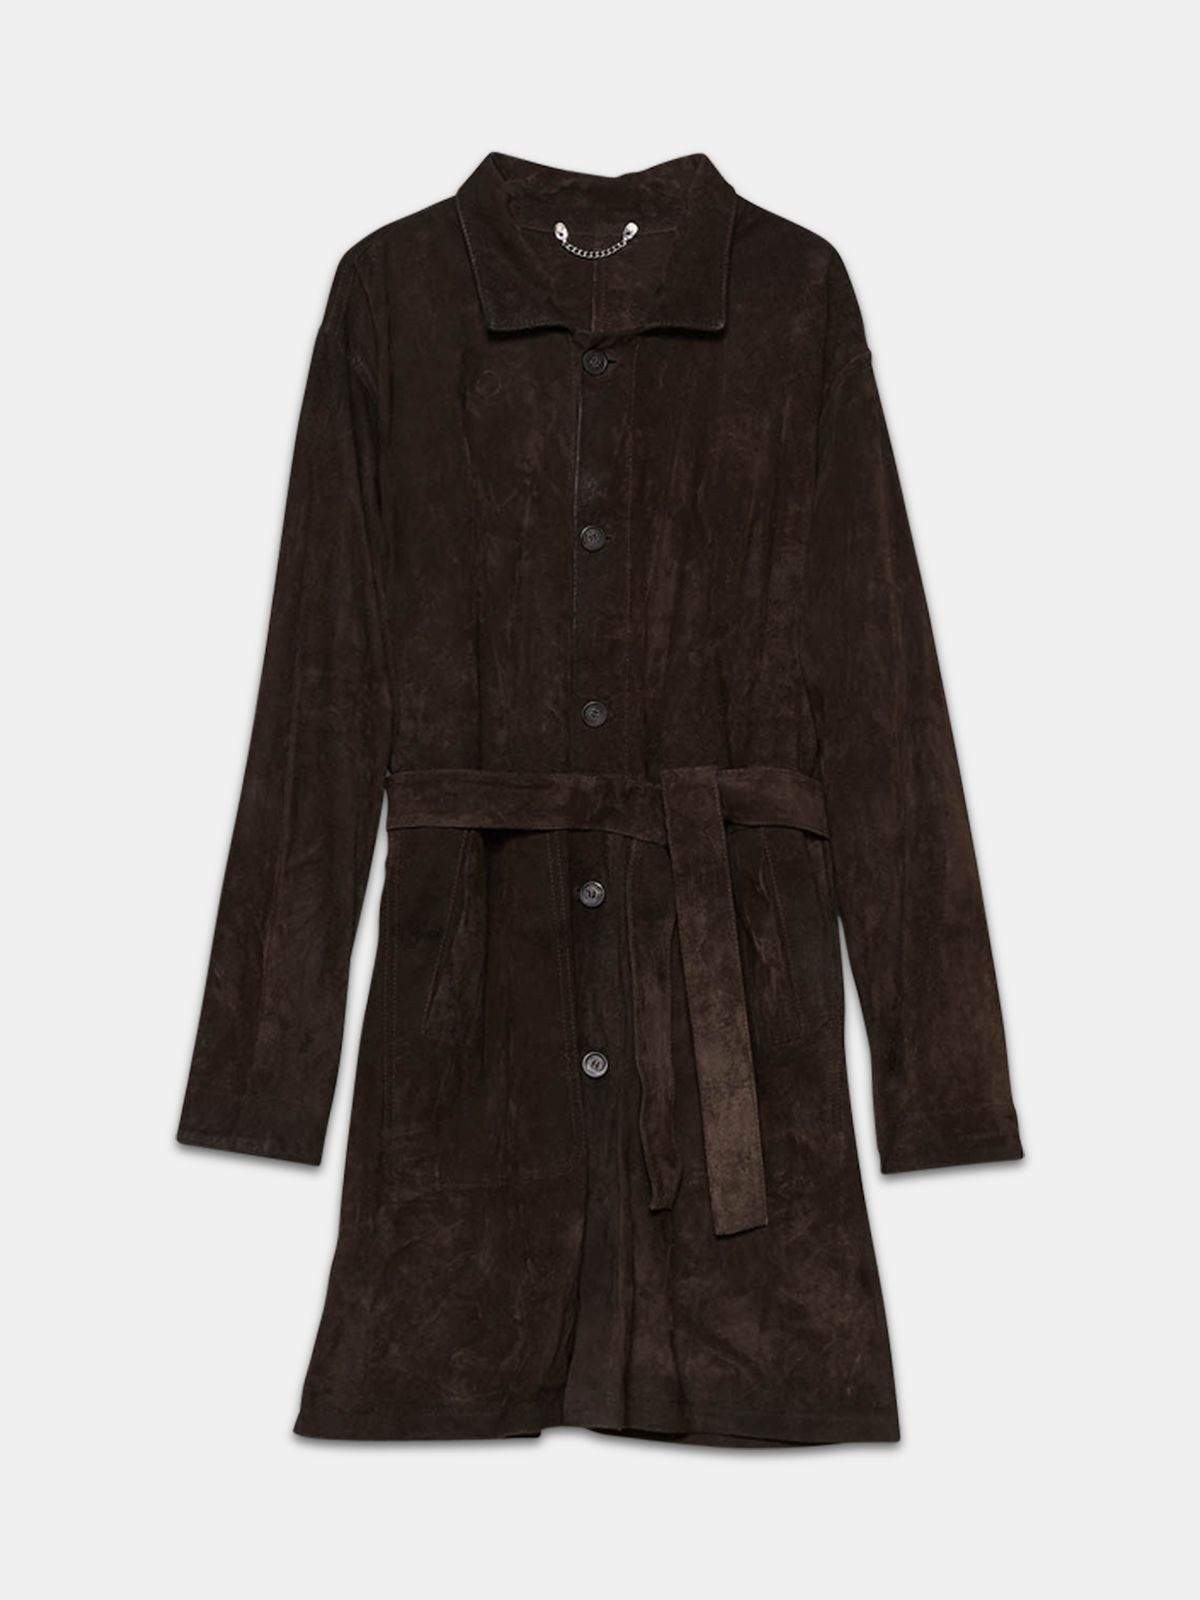 Golden Goose - Tadashi coat in brushed suede leather in